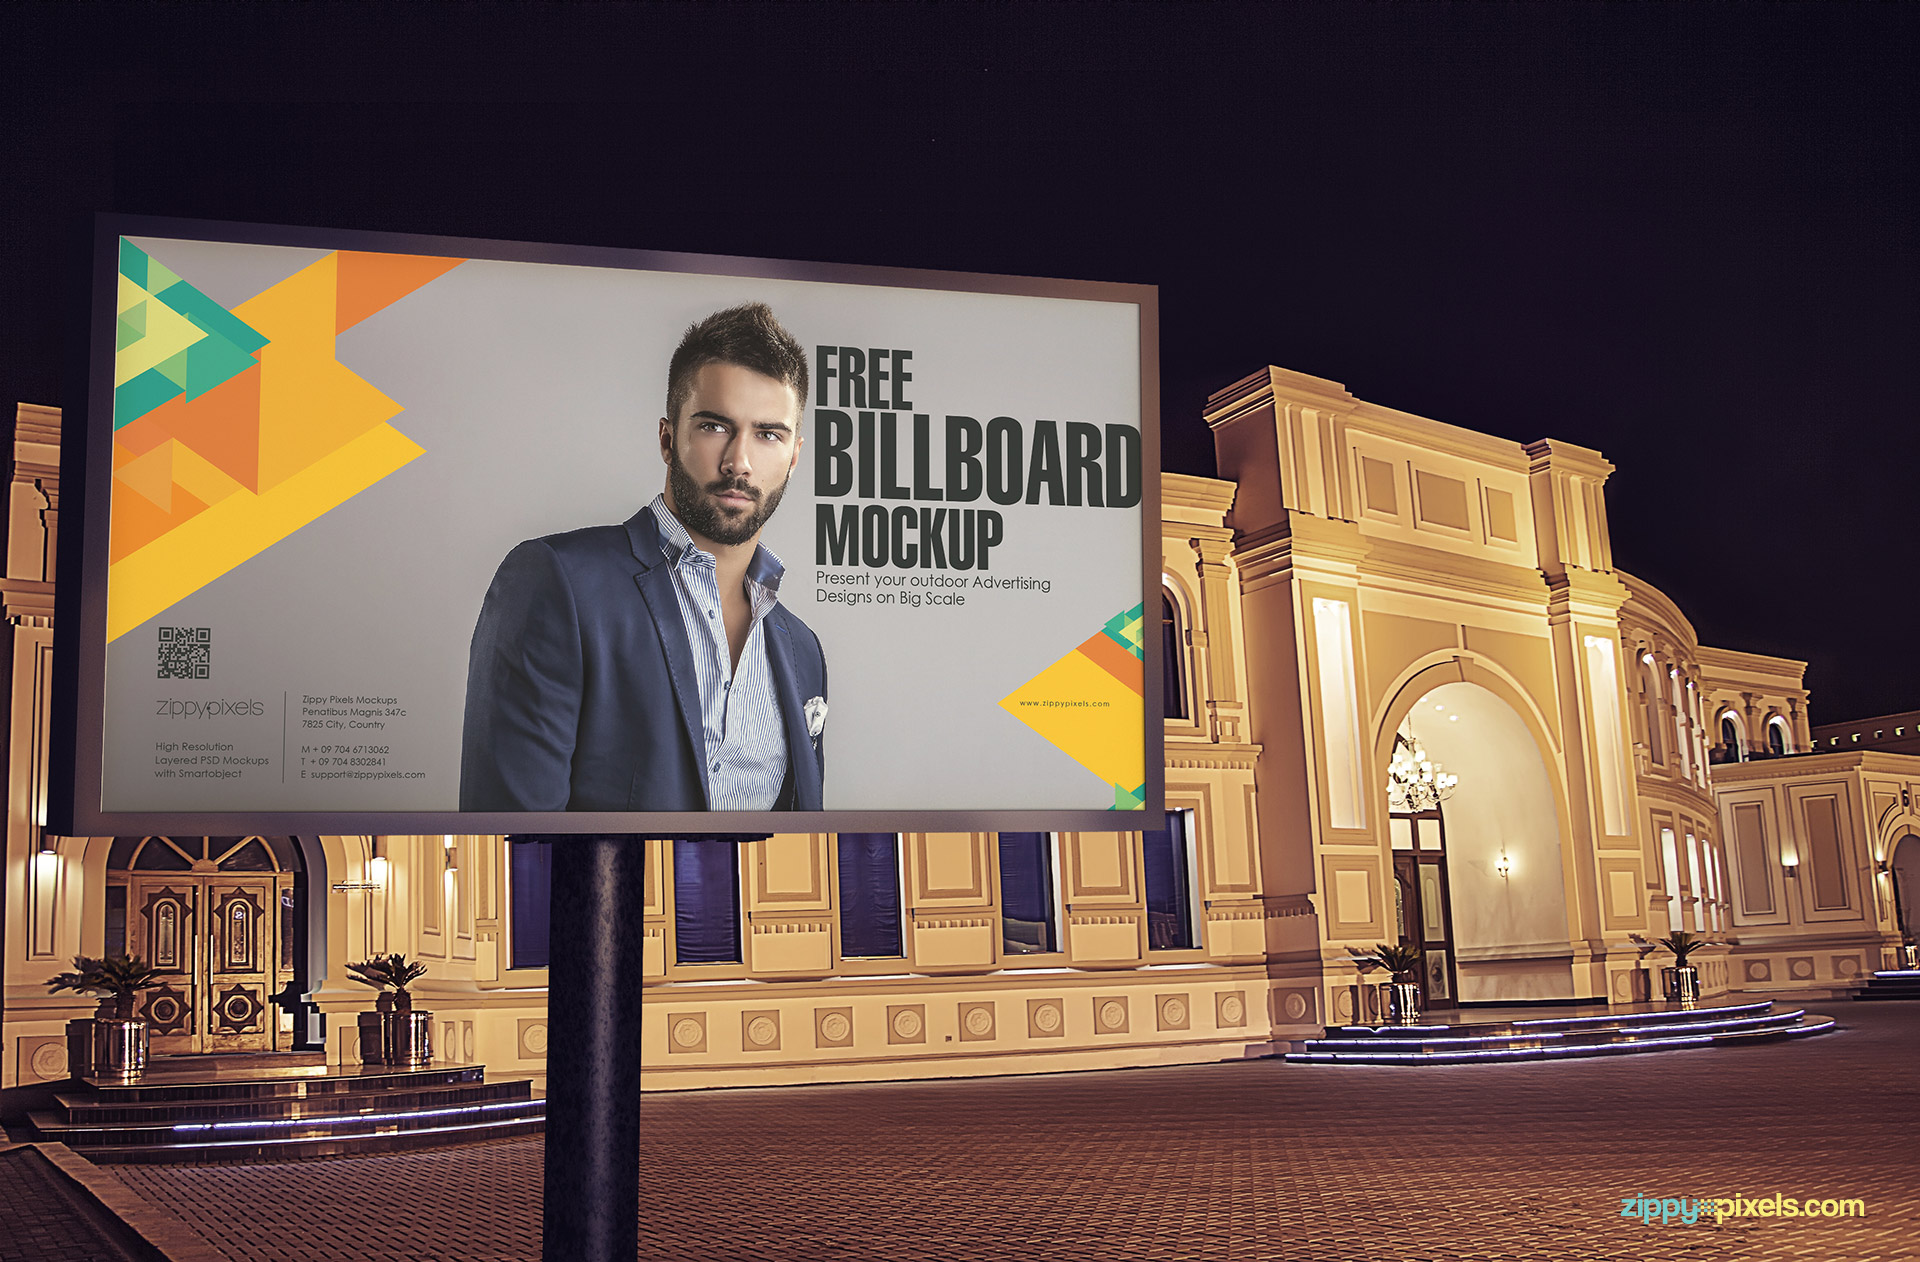 Full view of the free billboard mockup PSD.